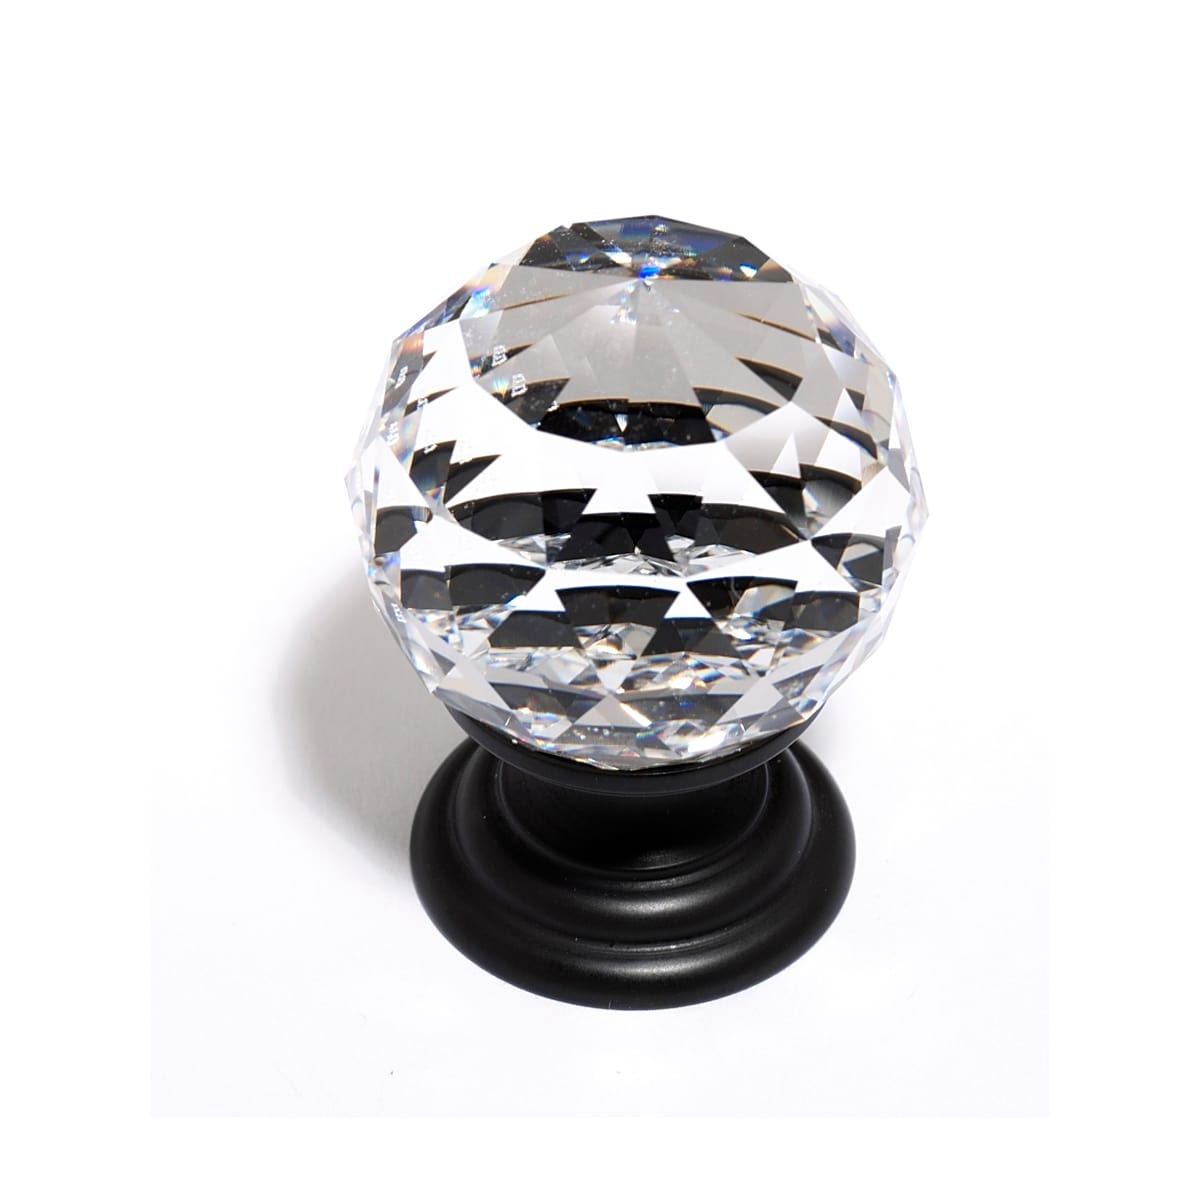 Alno Crystal 1-1/4 Inch Round Cabinet Knob